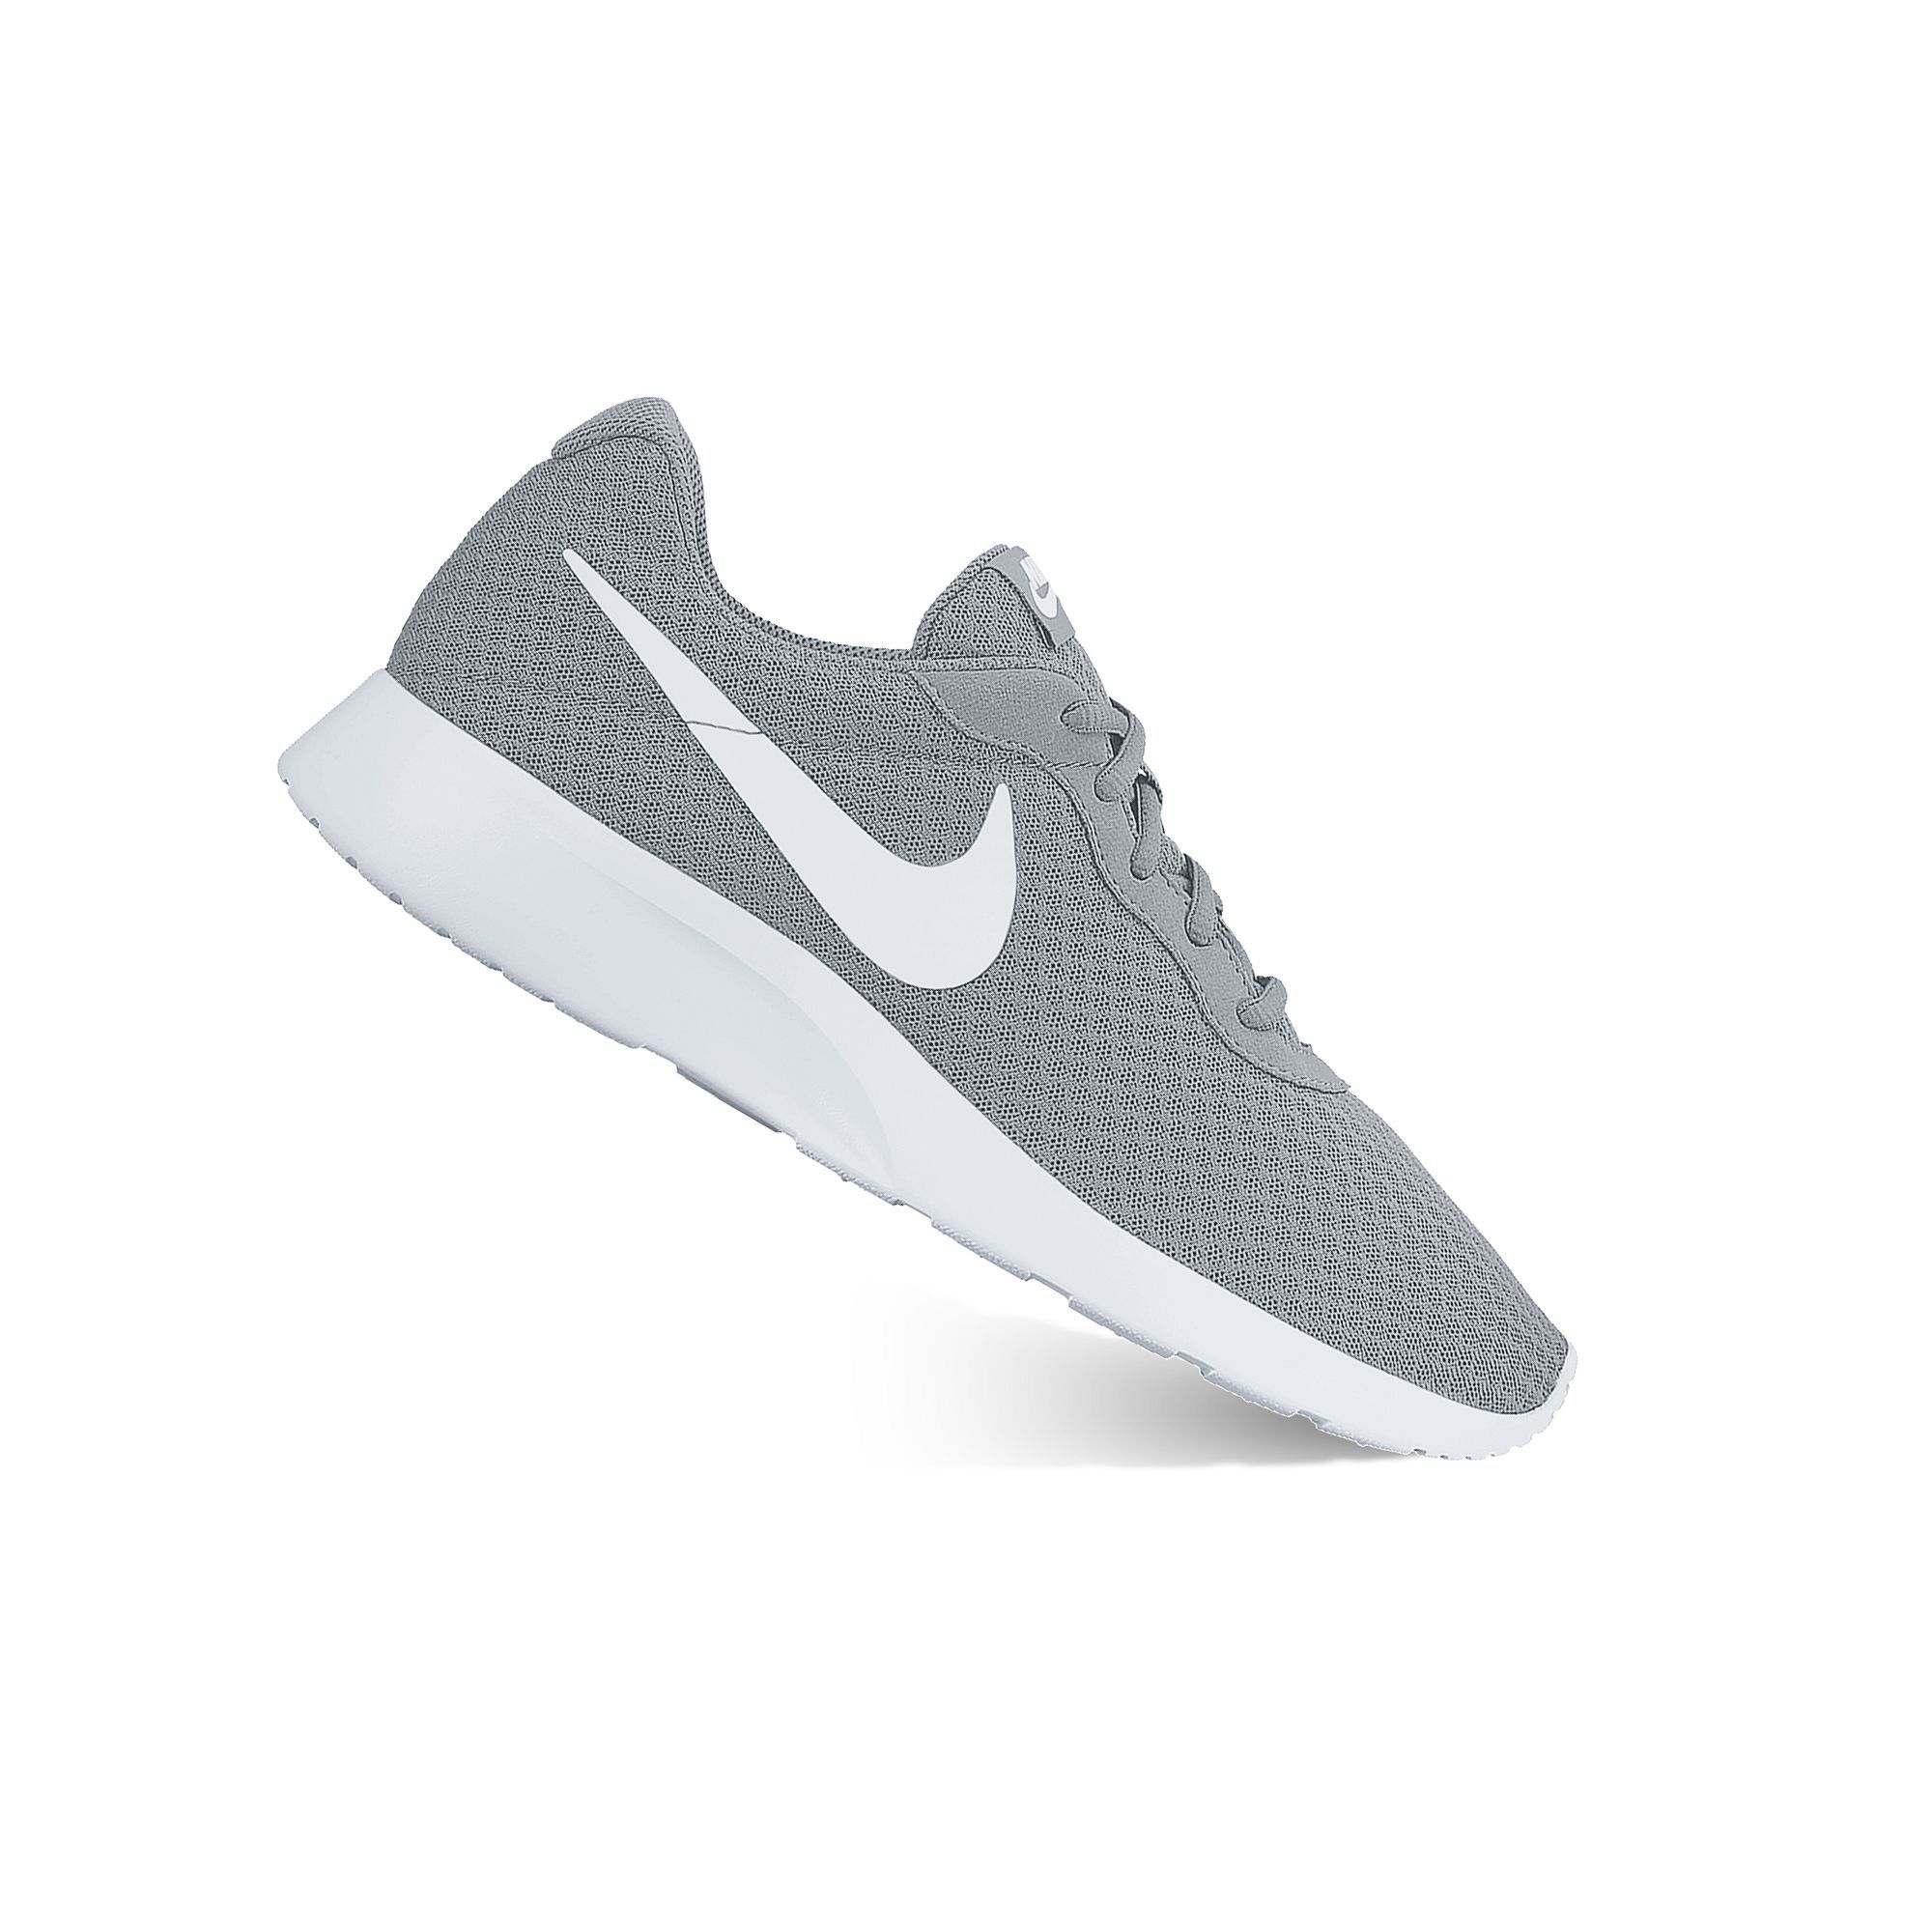 c0185446aa44d Nike Tanjun Men s Athletic Shoes in 2019